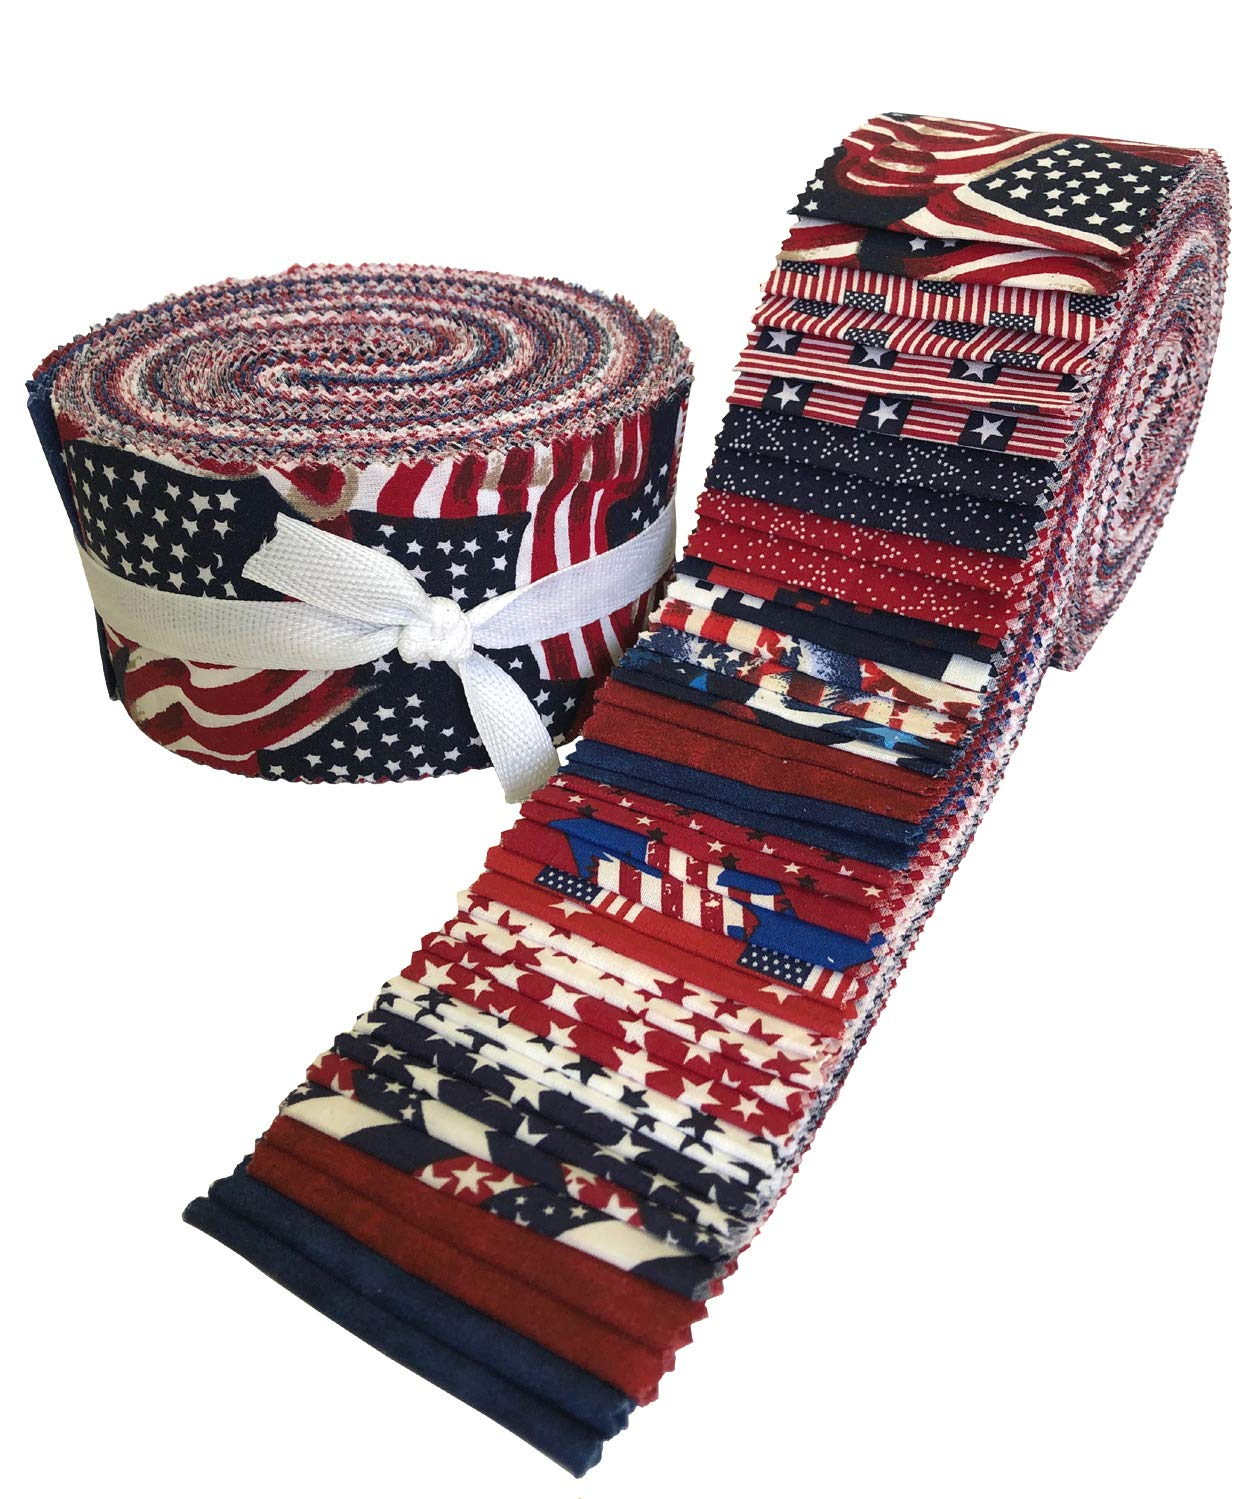 Made in USA Jelly Roll Collection 40 Precut 2.5-inch Quilting Fabric Strips by Santee (Image #1)